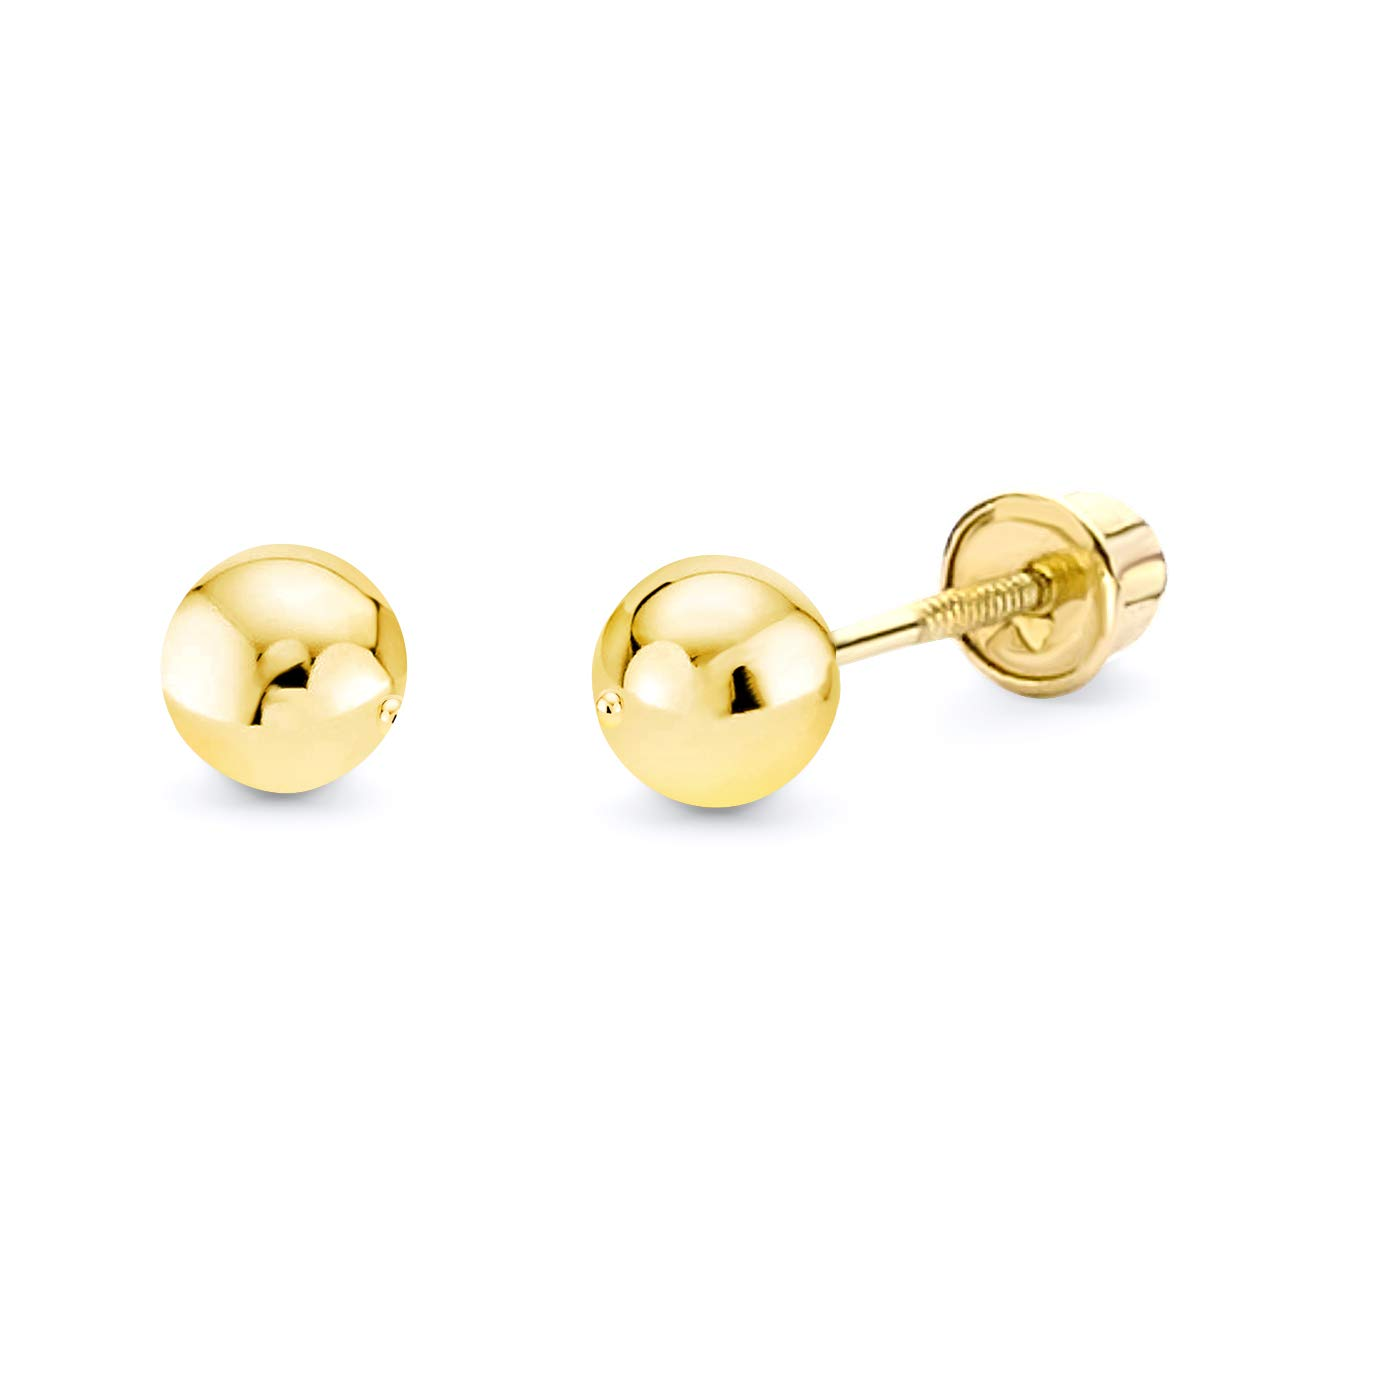 14k Yellow Gold 4mm Ball Stud Earrings with Screw Back